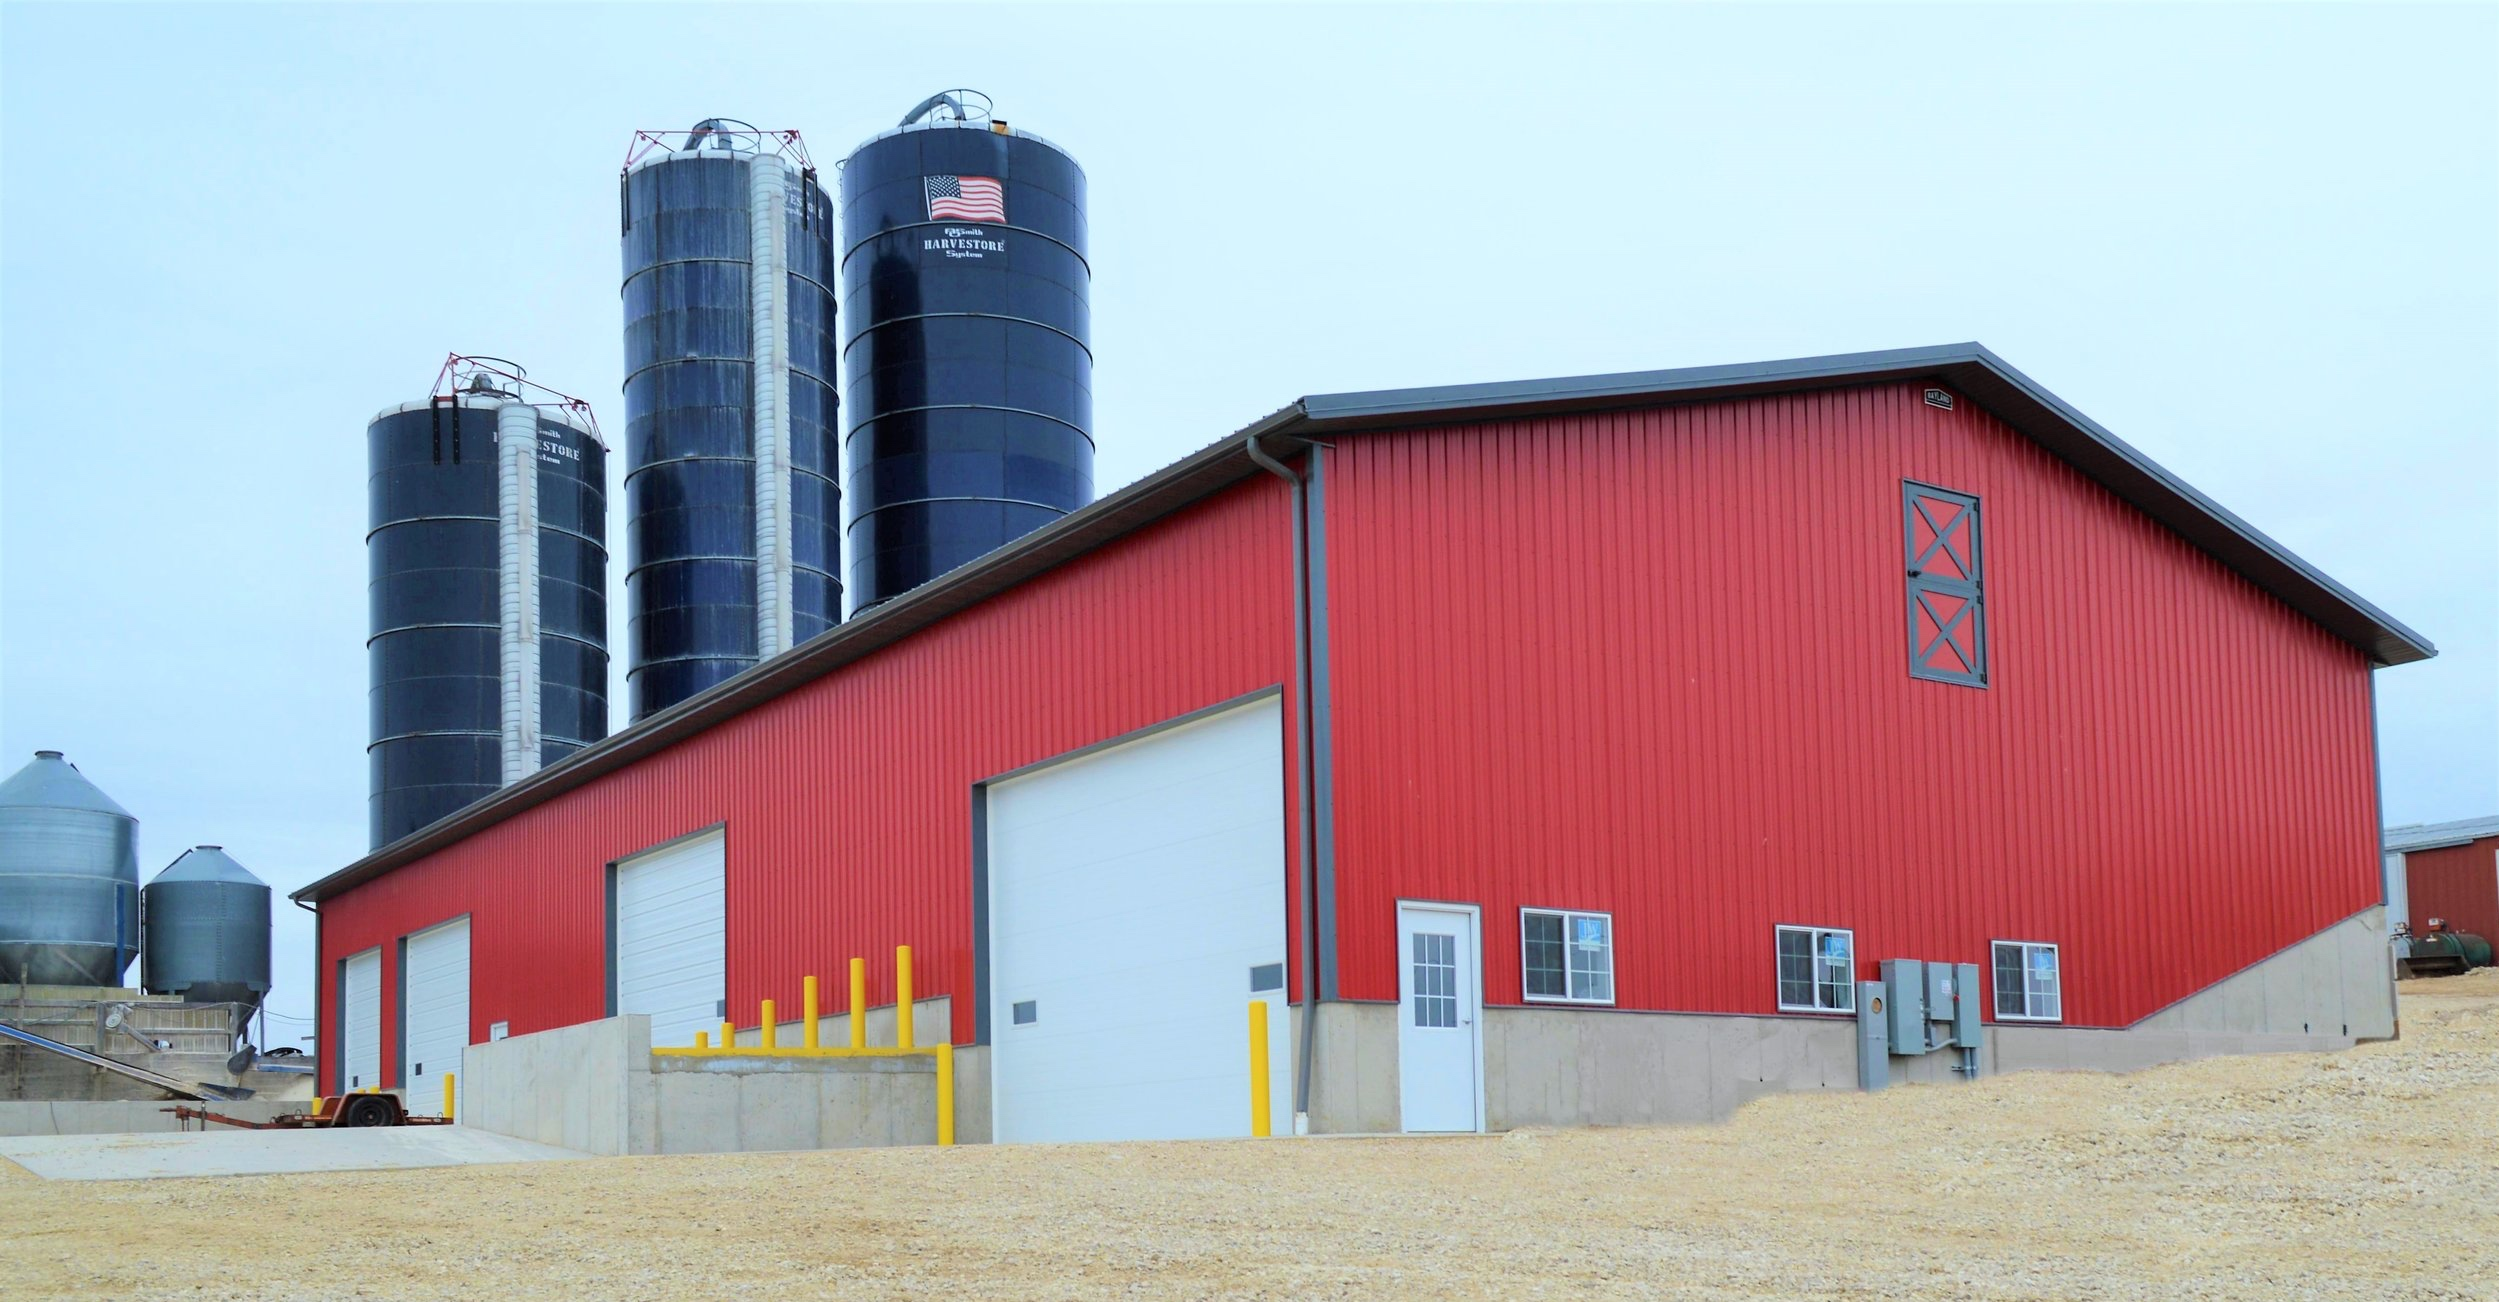 REDLIN DAIRY FARM COMMODITY BUILDING - OCONOMOWOC, WI